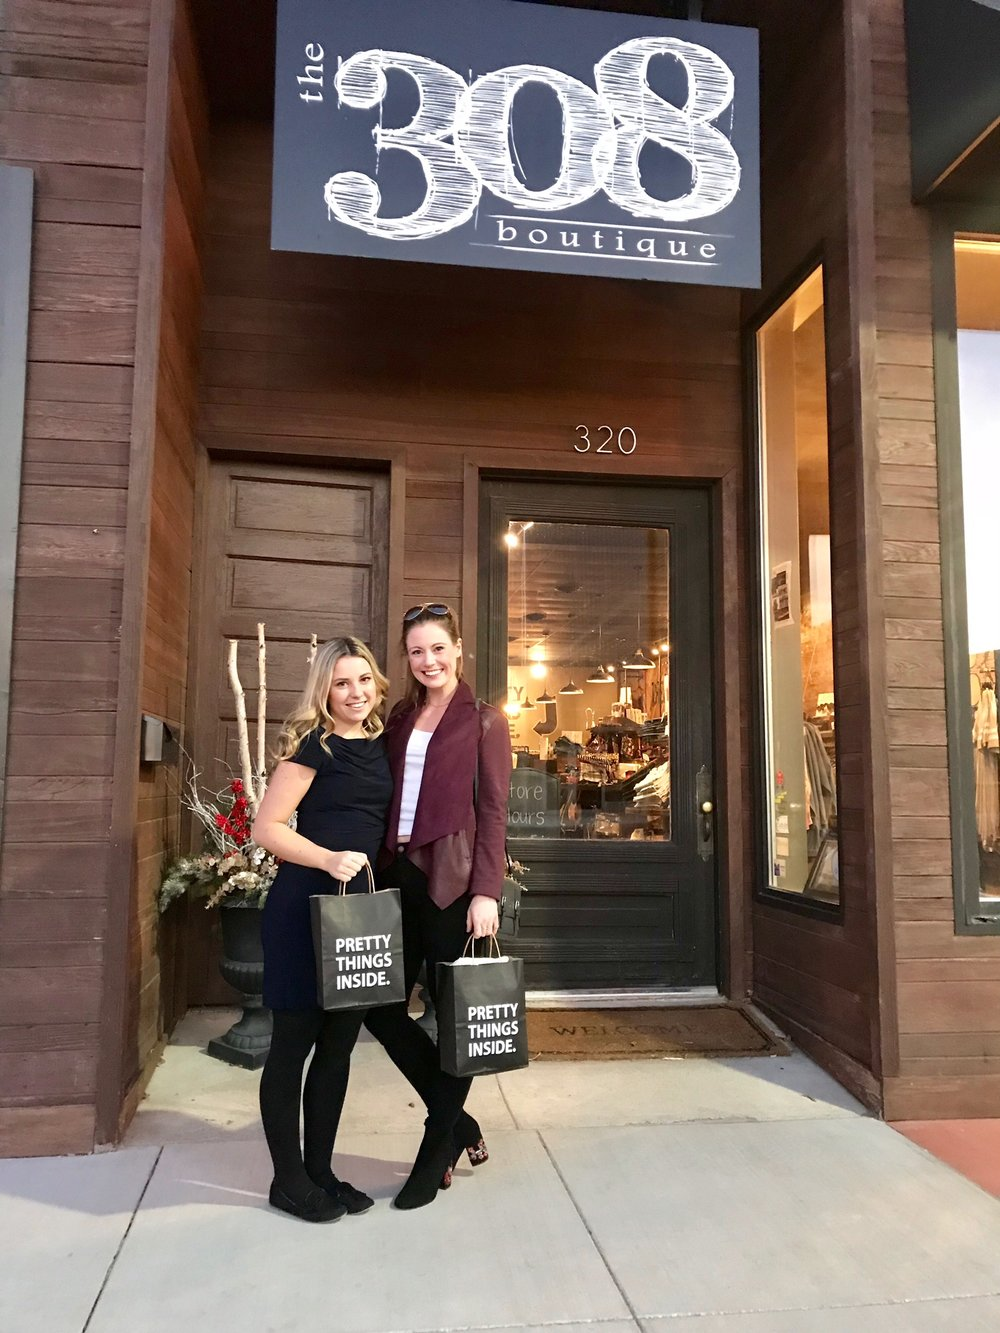 - For the Emerging Designer Showcase, Lauren and I were styled by The 308 Boutique in Holdrege, Nebraska.The owner, Erin Sandy opened the store, giving us a one-on-one personal shopping experience.